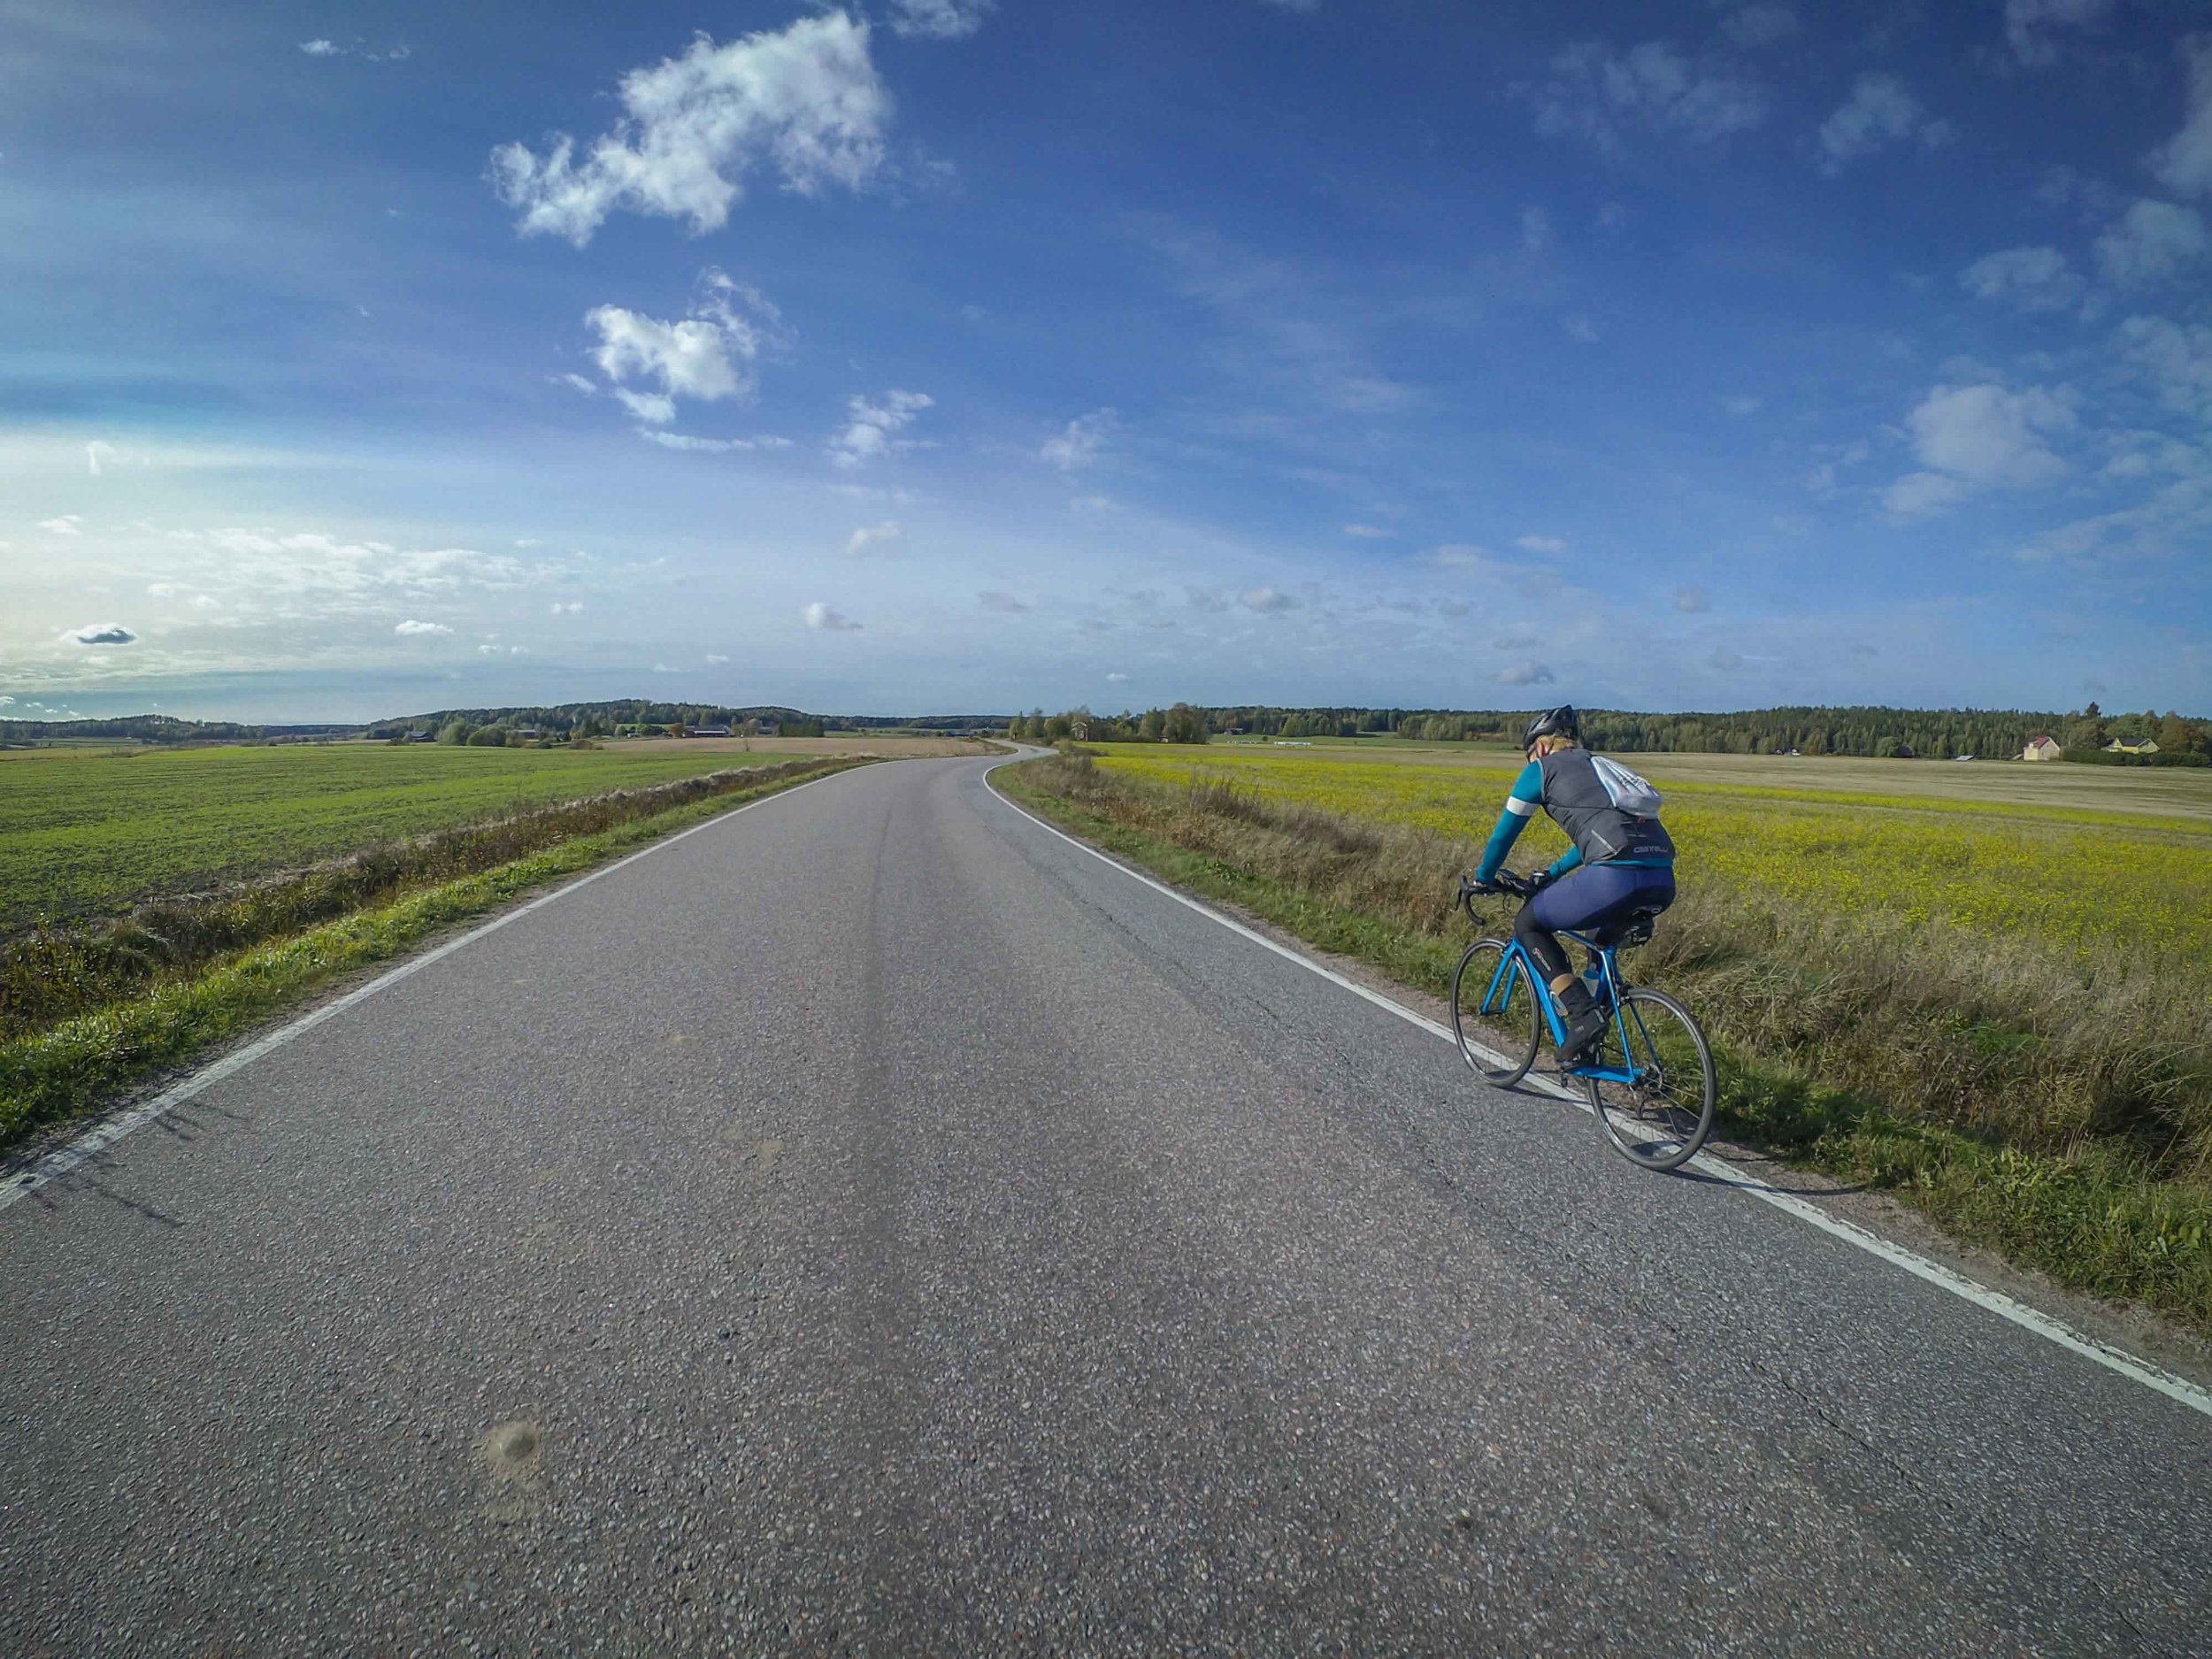 Silent roads on the countryside offering a headwind-tunnel